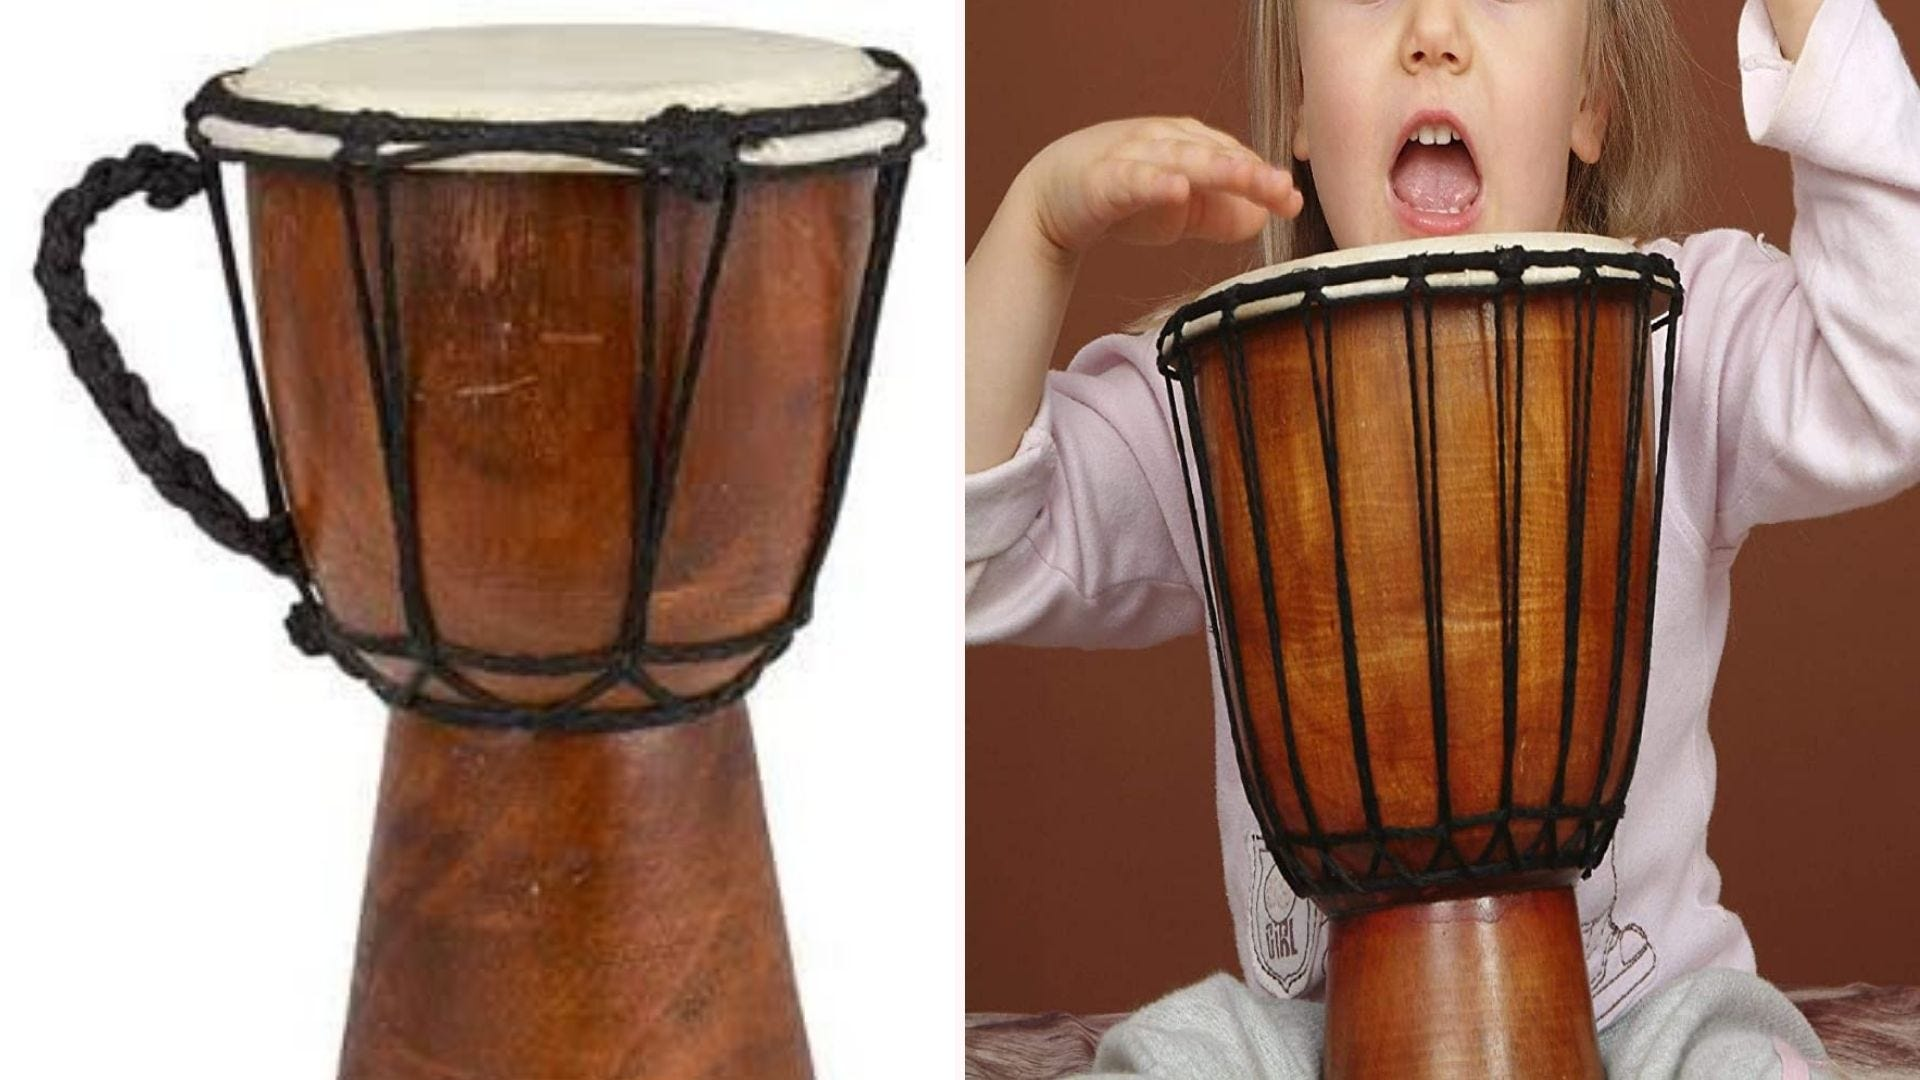 A wooden Djembe drum with a rope handle is displayed against a white background; a young girl is playing it on the right side.